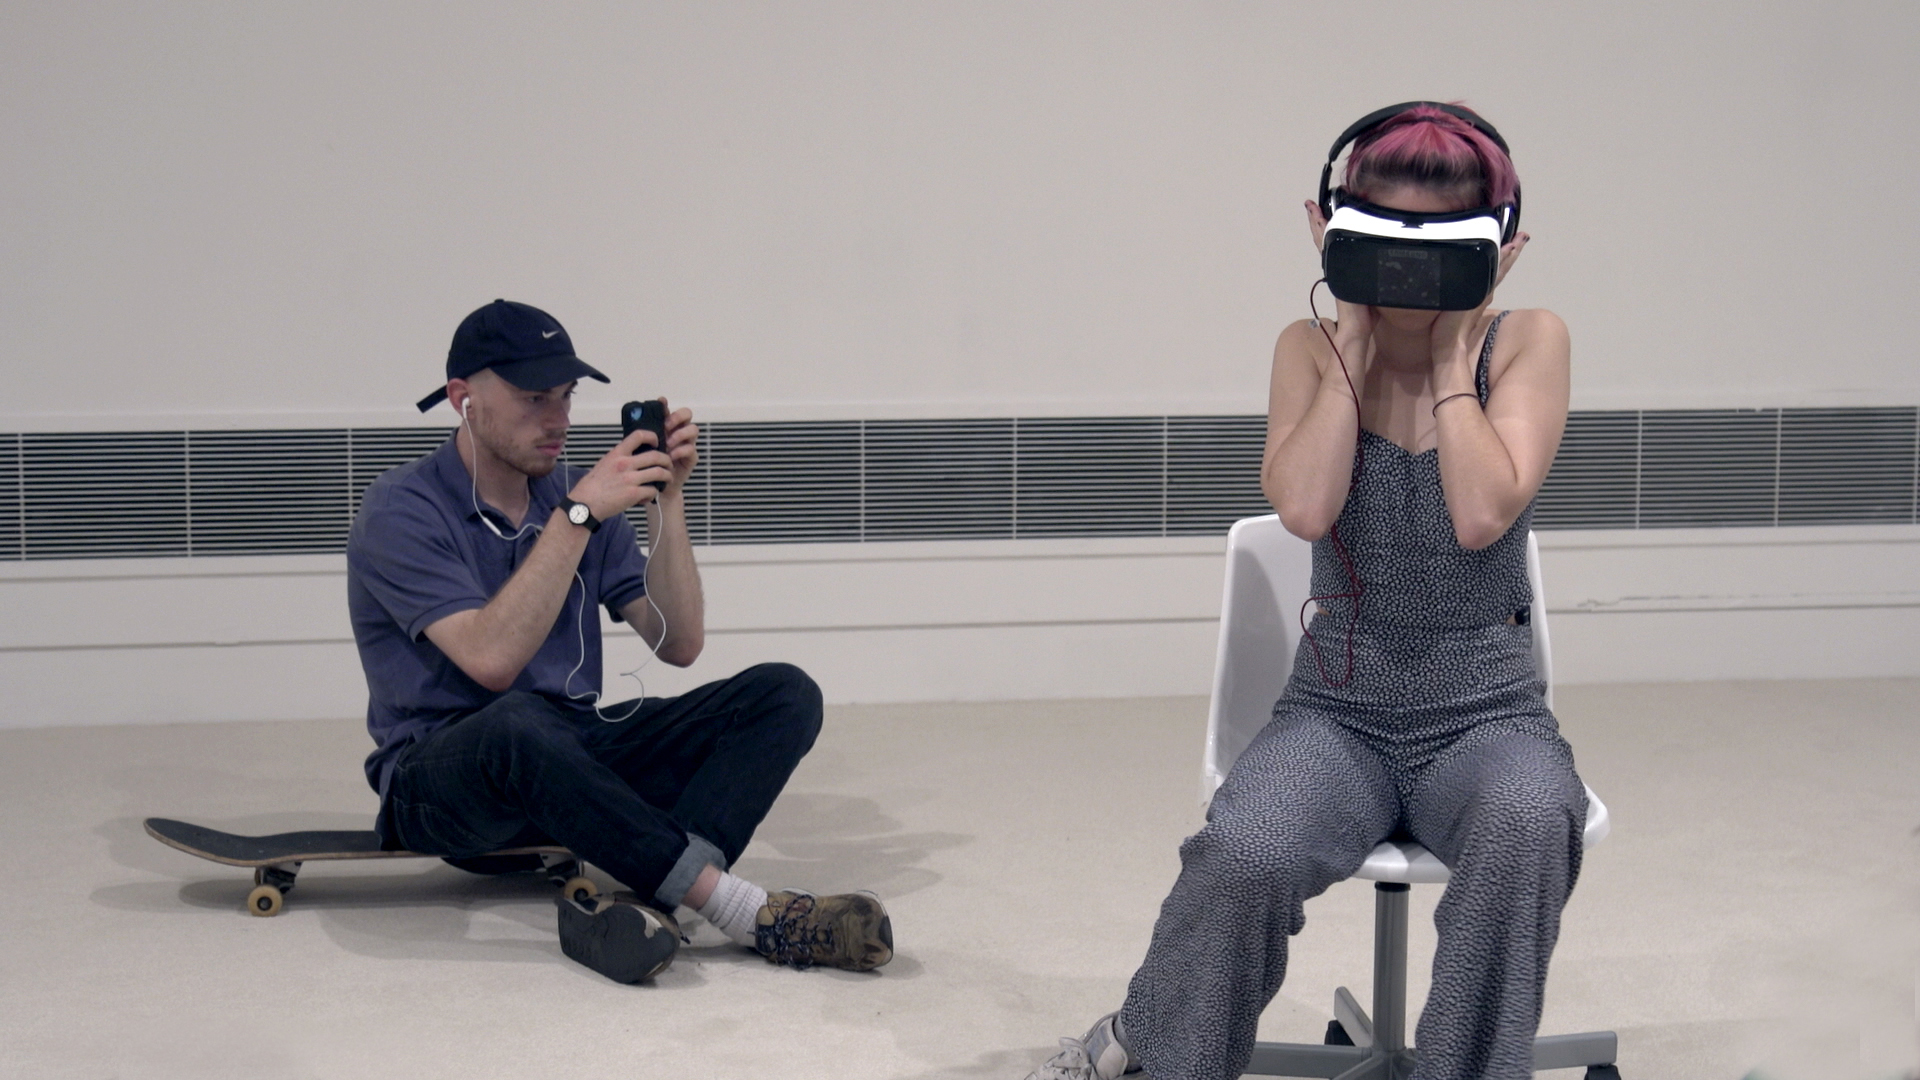 Photography shoot featuring students at CSM Kings Cross wearing Virtual Reality Headsets photographe